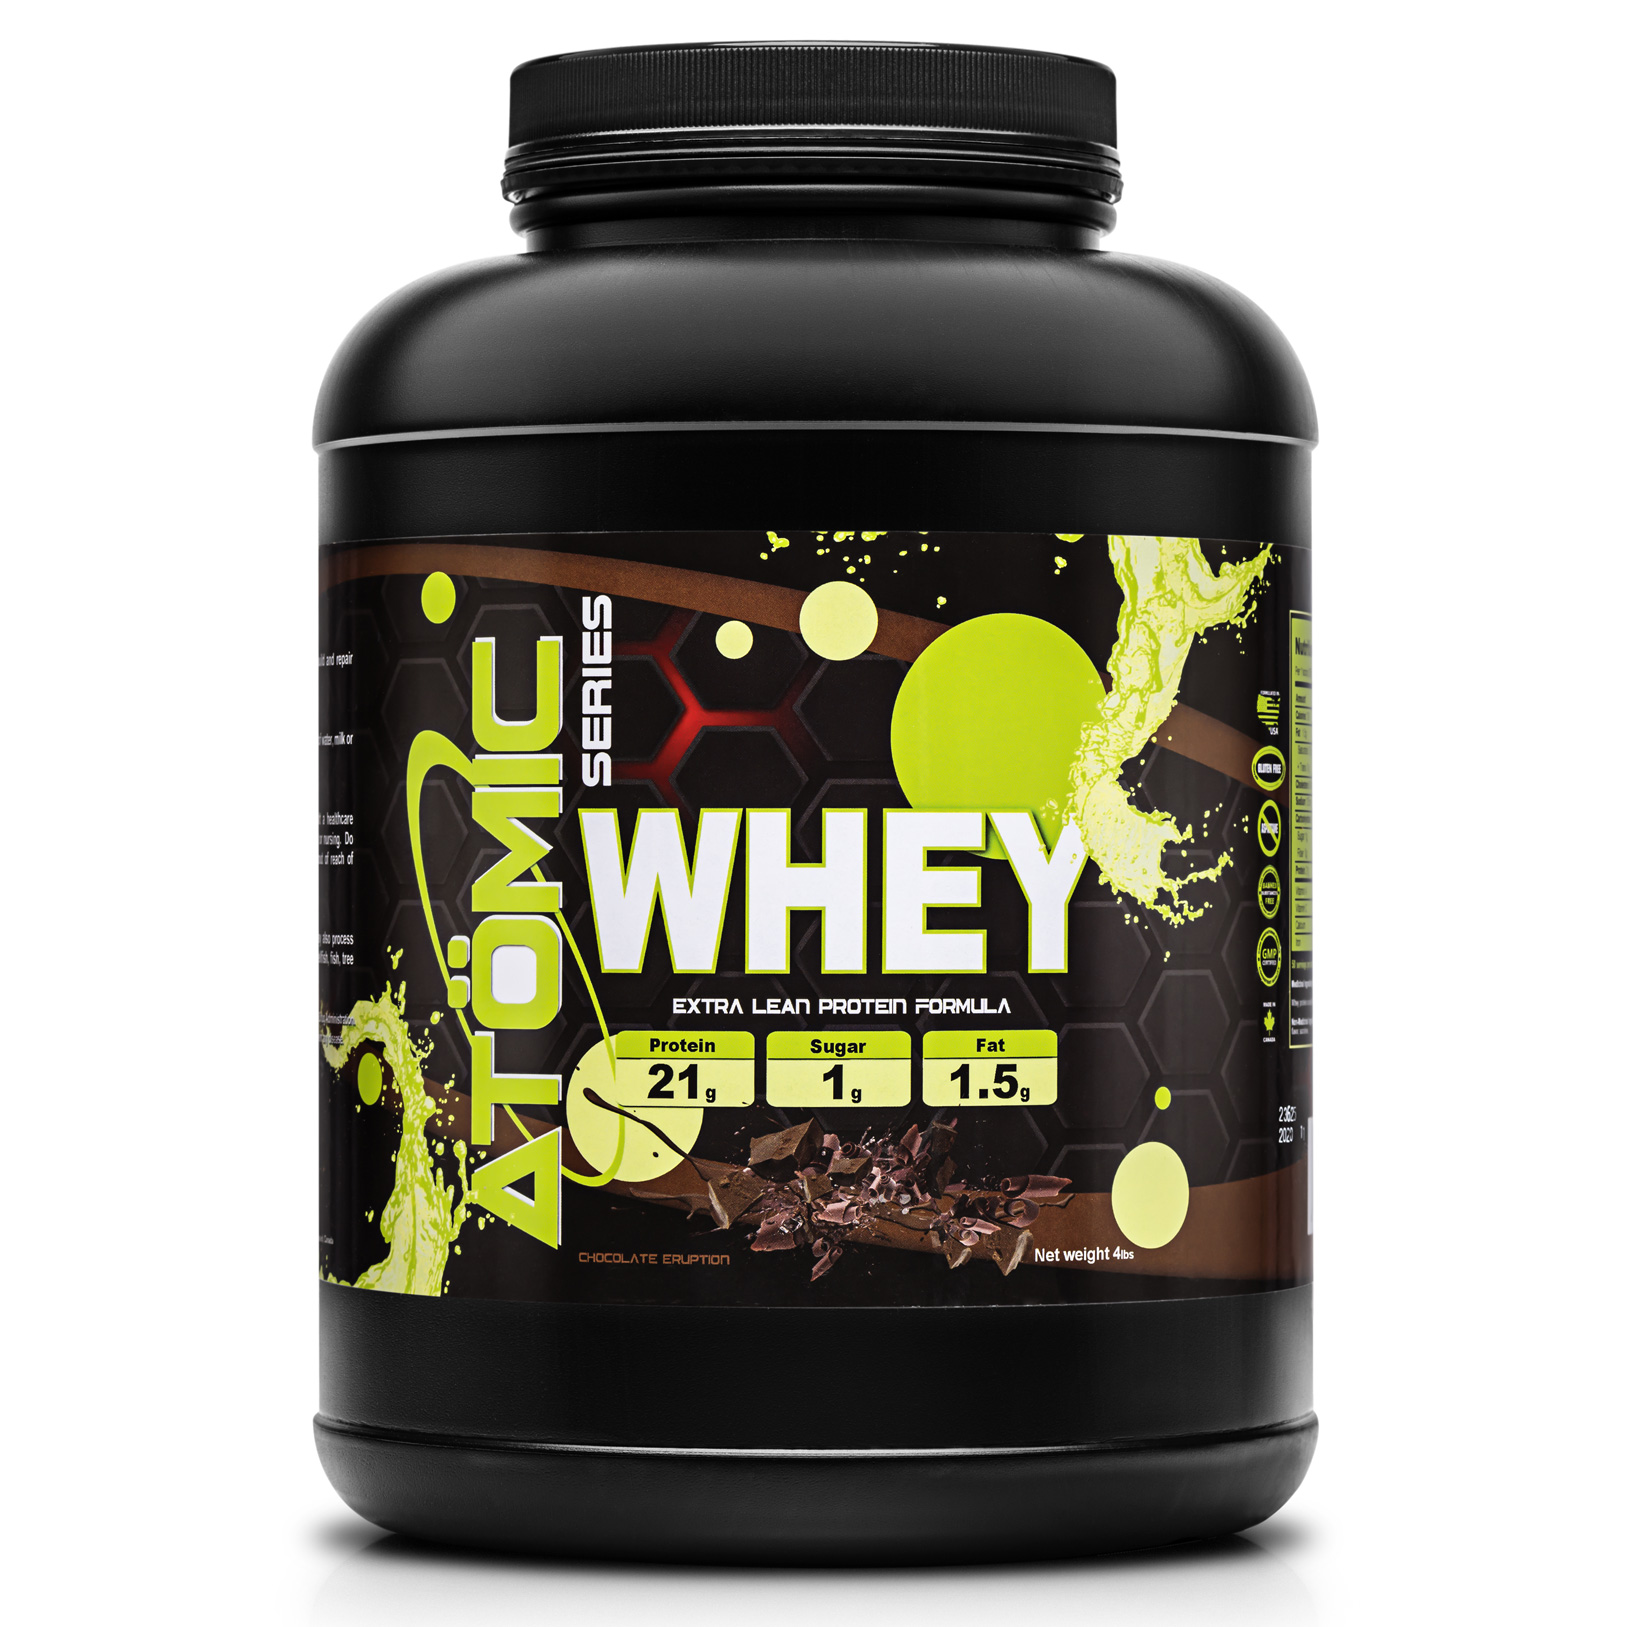 Atomic Series WHEY - Chocolate Eruption